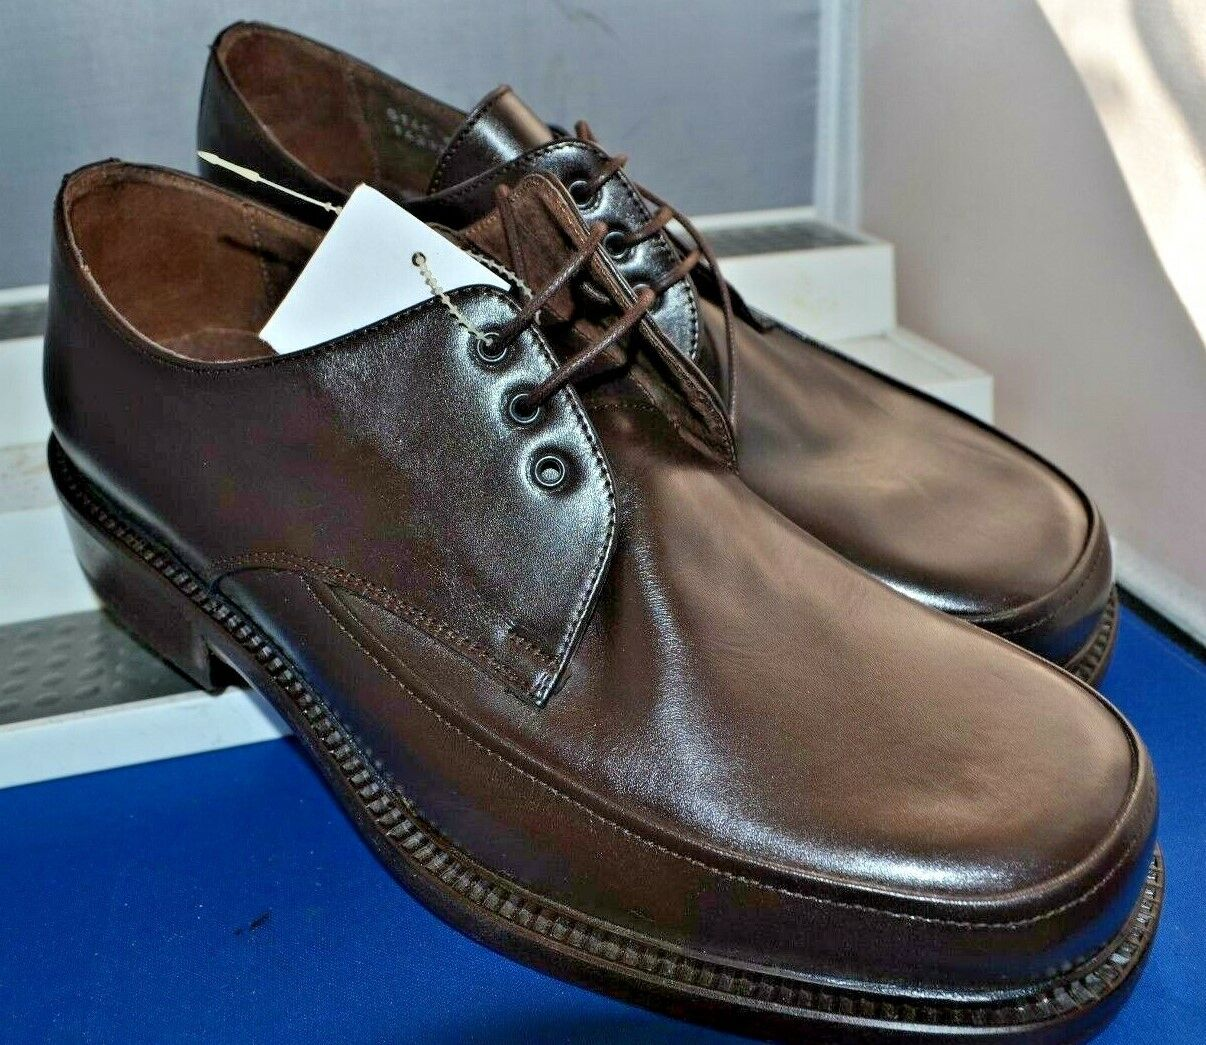 DOLCIS (Made in ) RETRO VTG braun TWIN DERBY STURDY WORK schuhe UK 11 EU 45